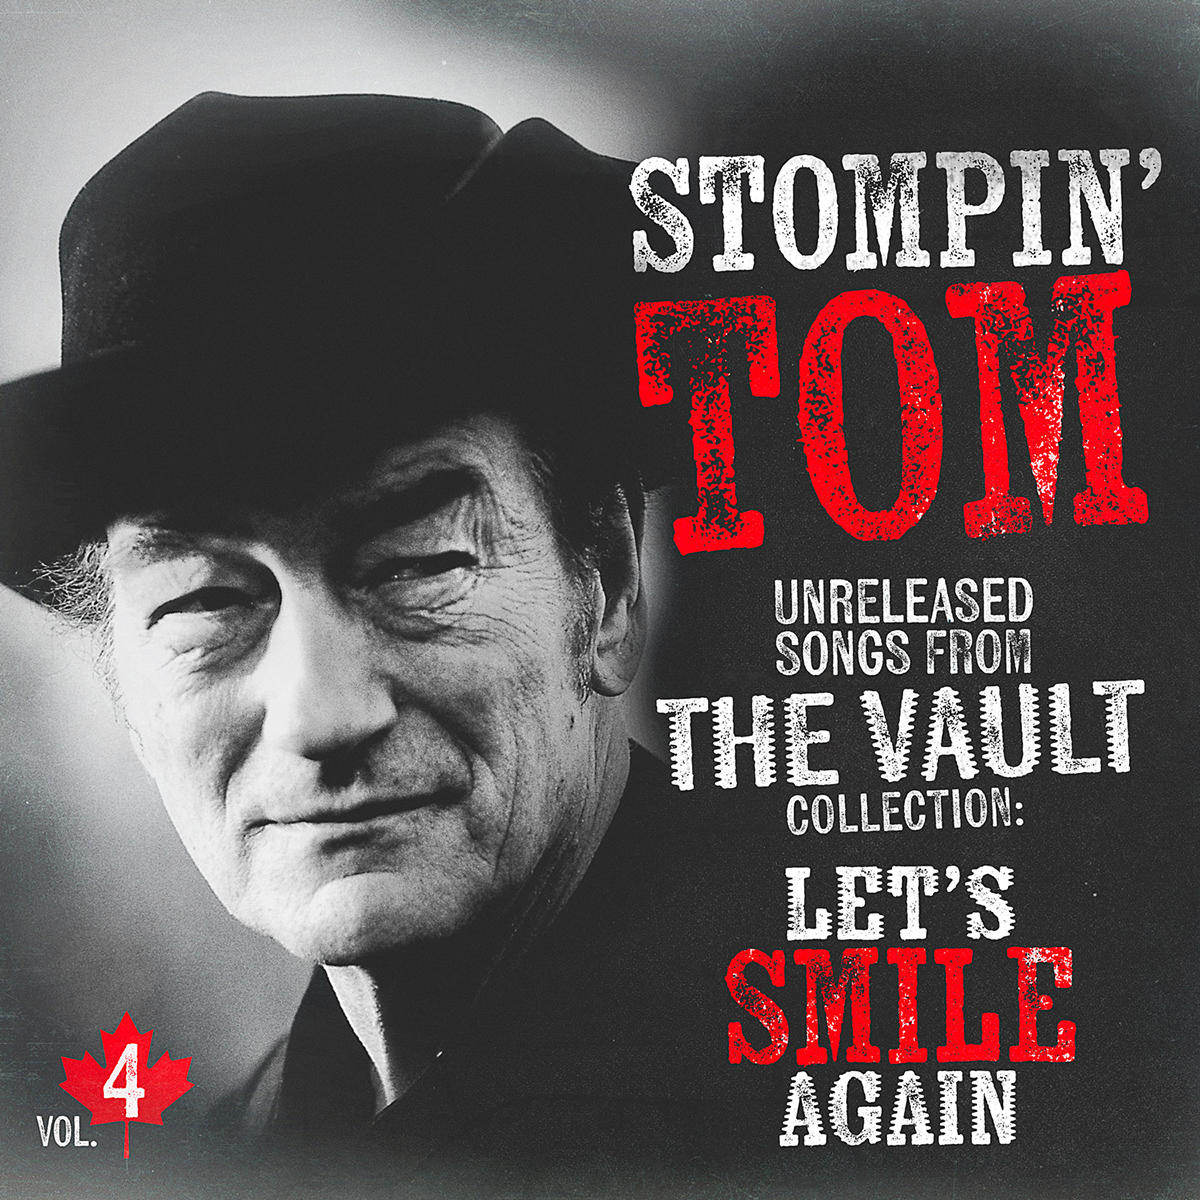 Stompin' Tom Connors Unreleased Songs from The Vault Collection Vol. 4: Let's Smile Again On June 25